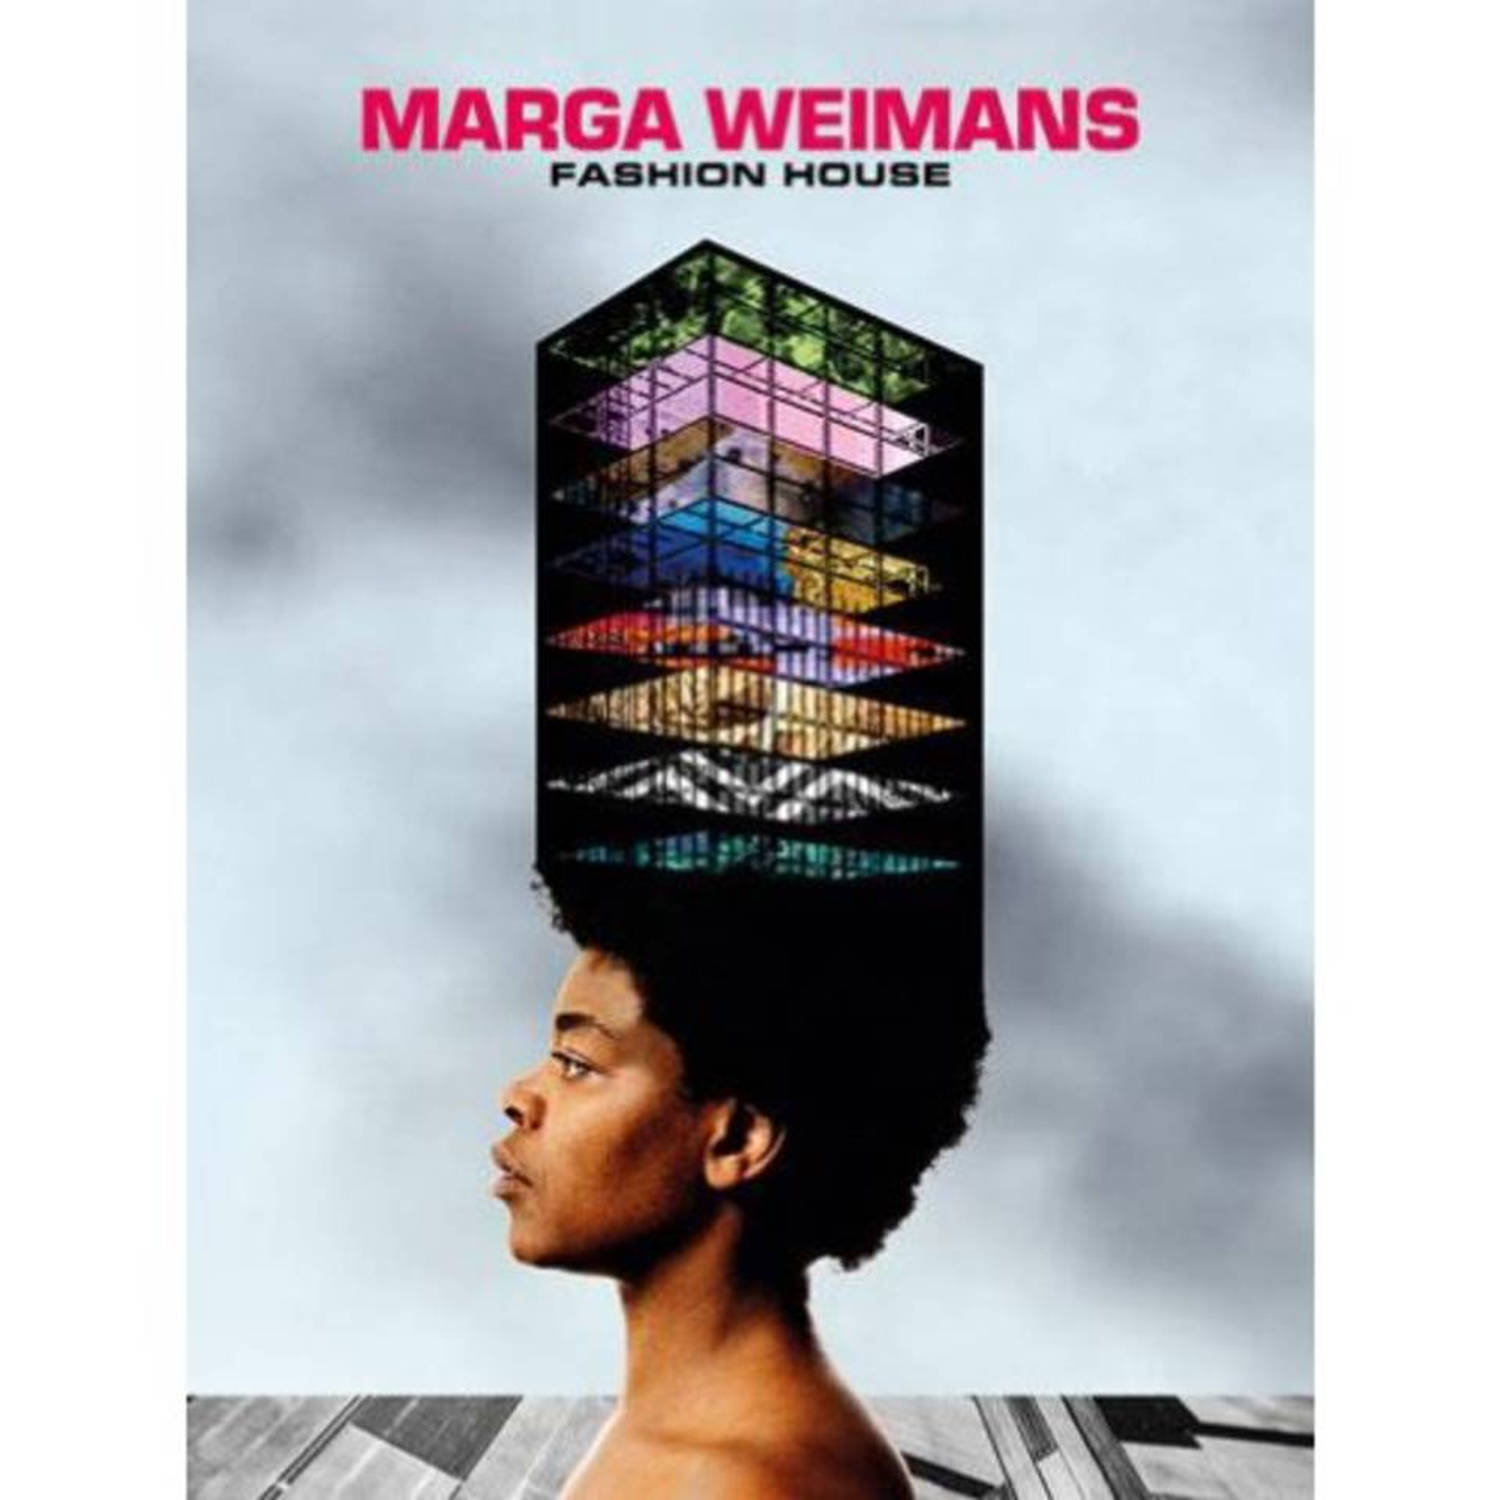 Marga Weimans, fashion house